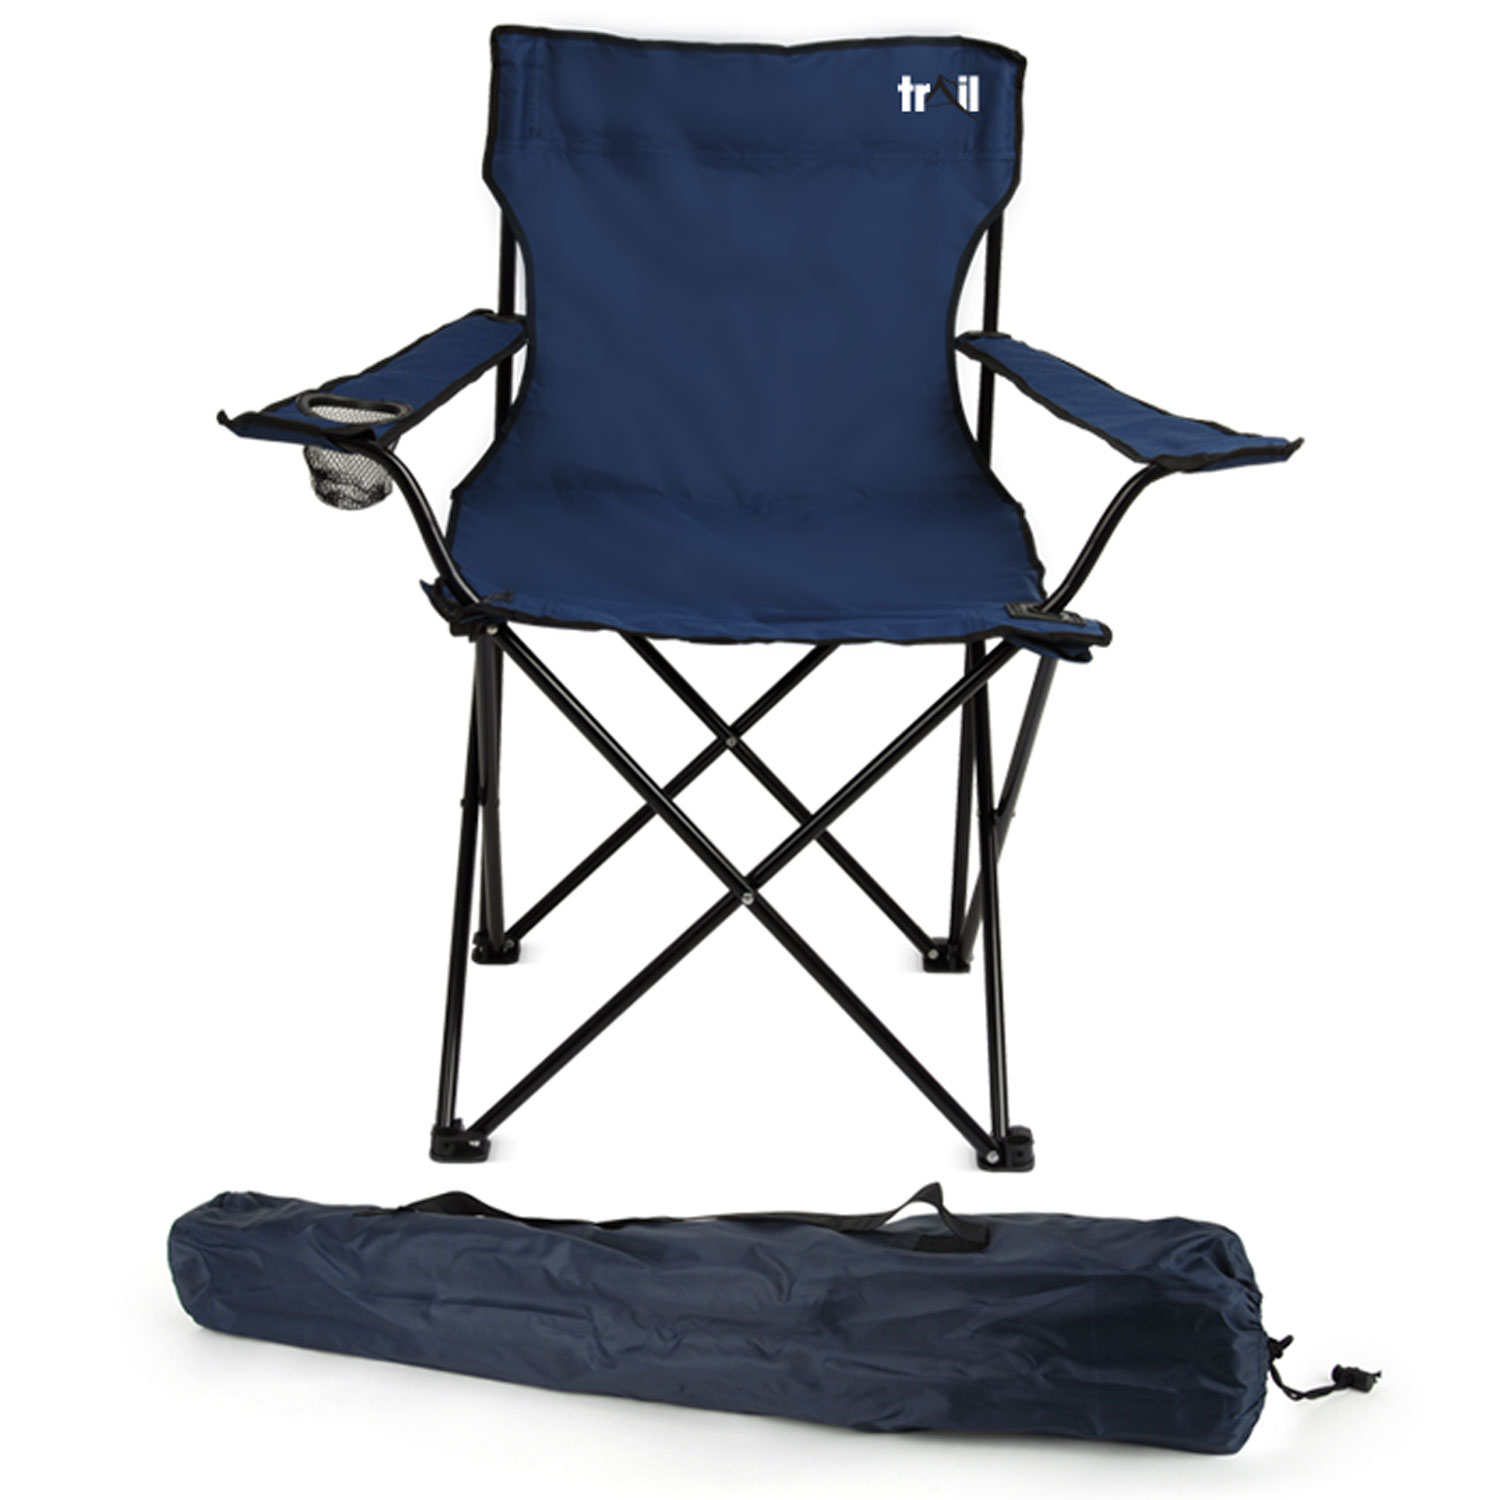 fold up camping chairs adirondack chair photos folding foldable beach camp festival